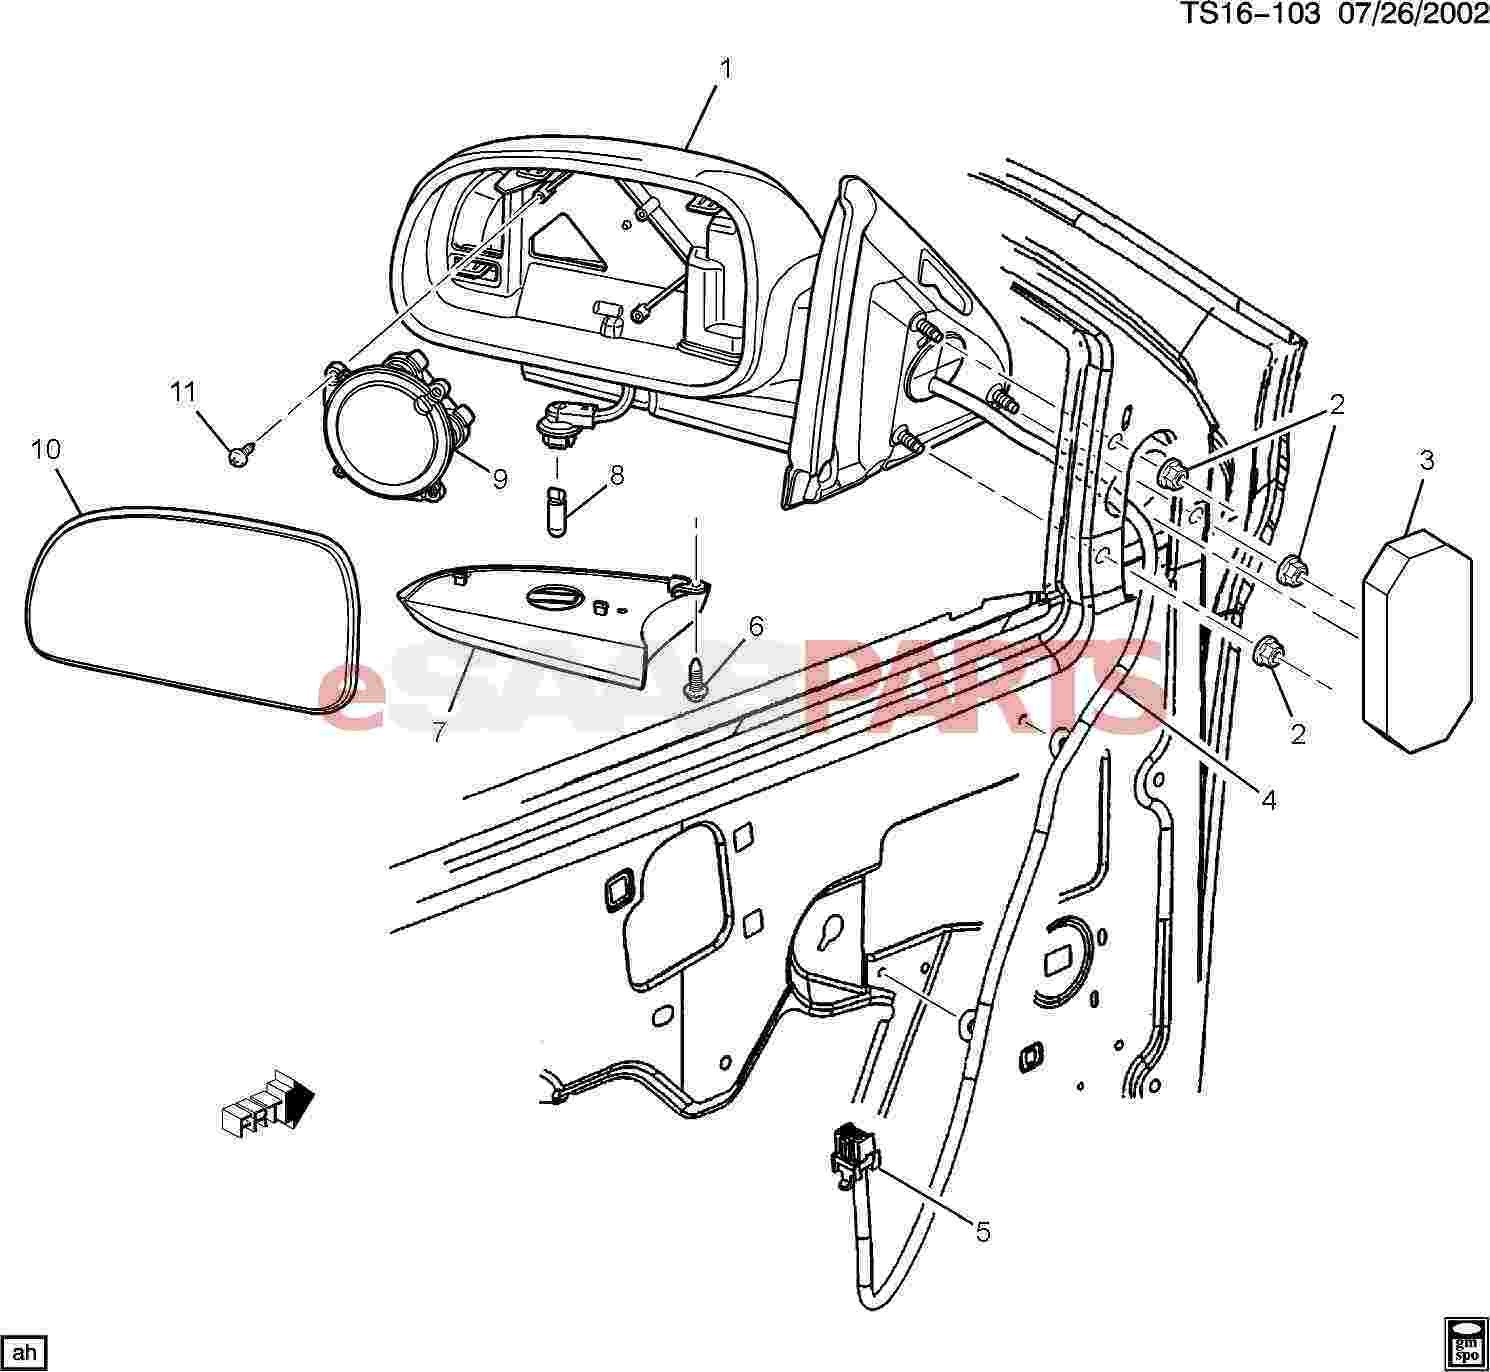 exterior car parts diagram 242 roof molding swift azh412